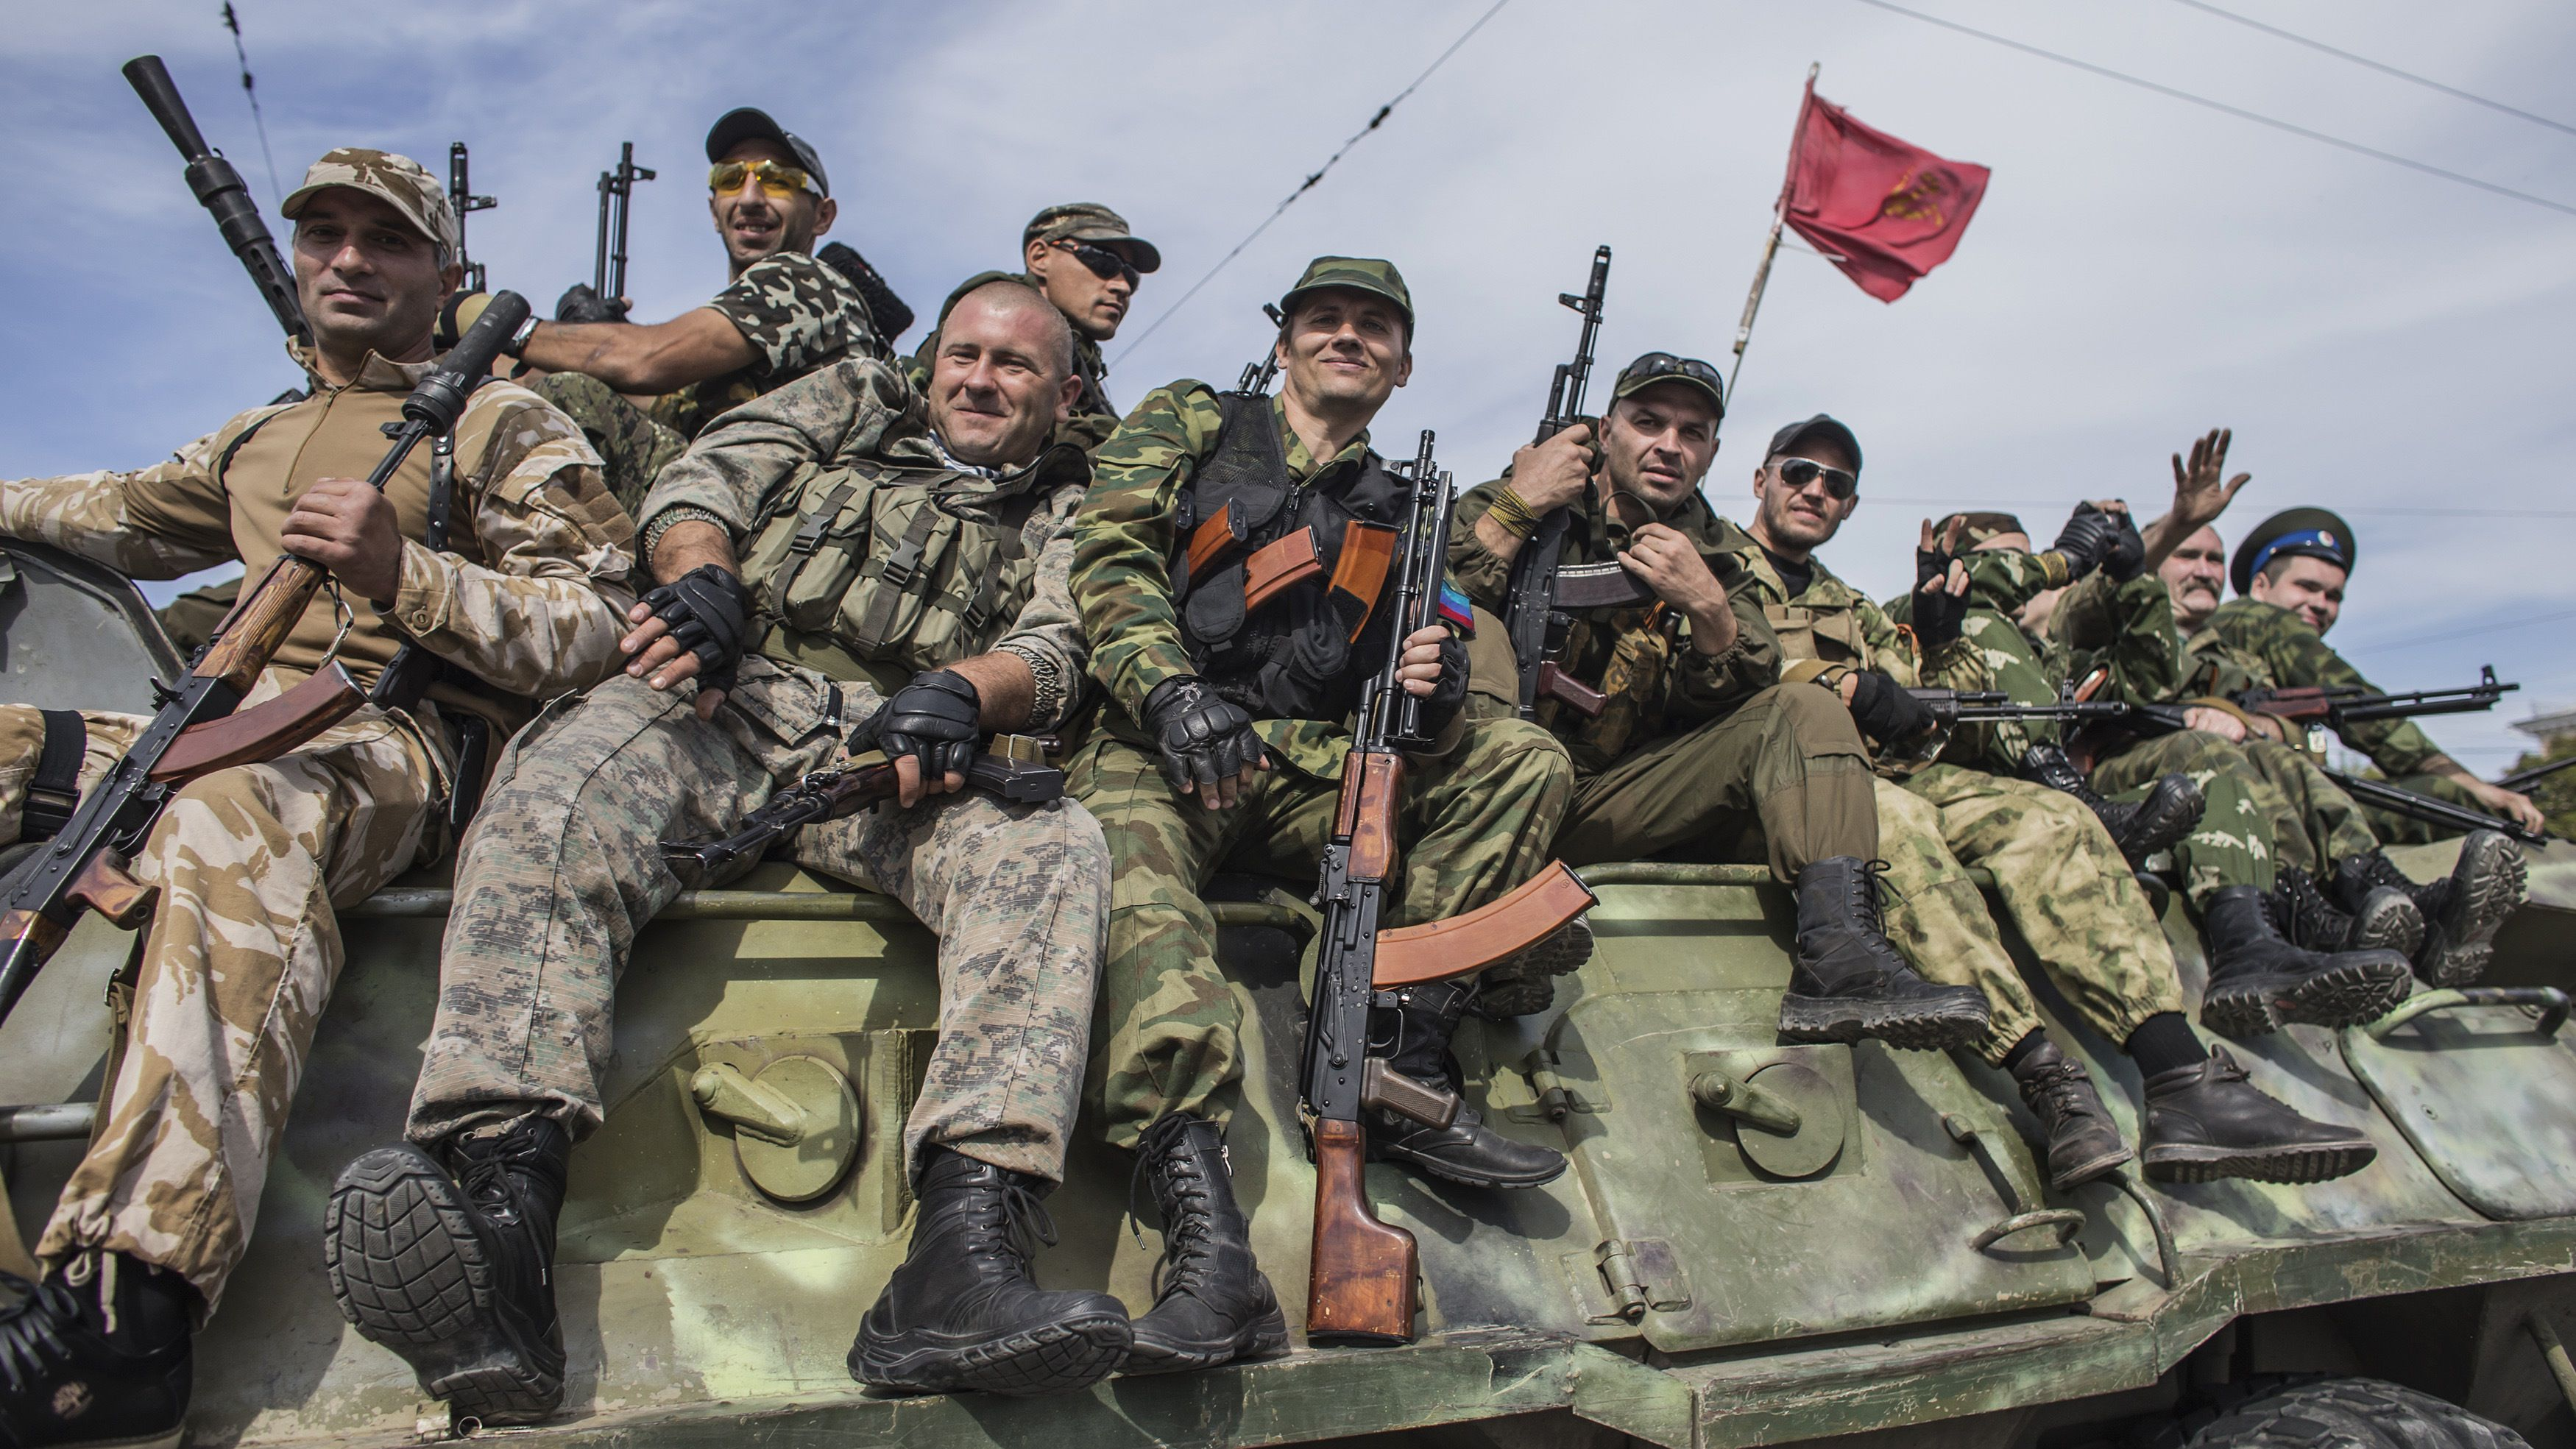 """Pro-Russian rebels ride on an armored personnel carrier (APC) during a parade in Luhansk, eastern Ukraine, September 14, 2014. Ukraine's Defence Minister said on Sunday that NATO countries were delivering weapons to his country to equip it to fight pro-Russian separatists and """"stop"""" Russian President Vladimir Putin. Valery Heletey told a news conference he had discussed weapons deliveries in bilateral meetings with NATO defence ministers during a NATO summit in Wales on Sept. 4-5. REUTERS/Marko Djurica (UKRAINE - Tags: POLITICS CIVIL UNREST MILITARY CONFLICT) - RTR466G7"""